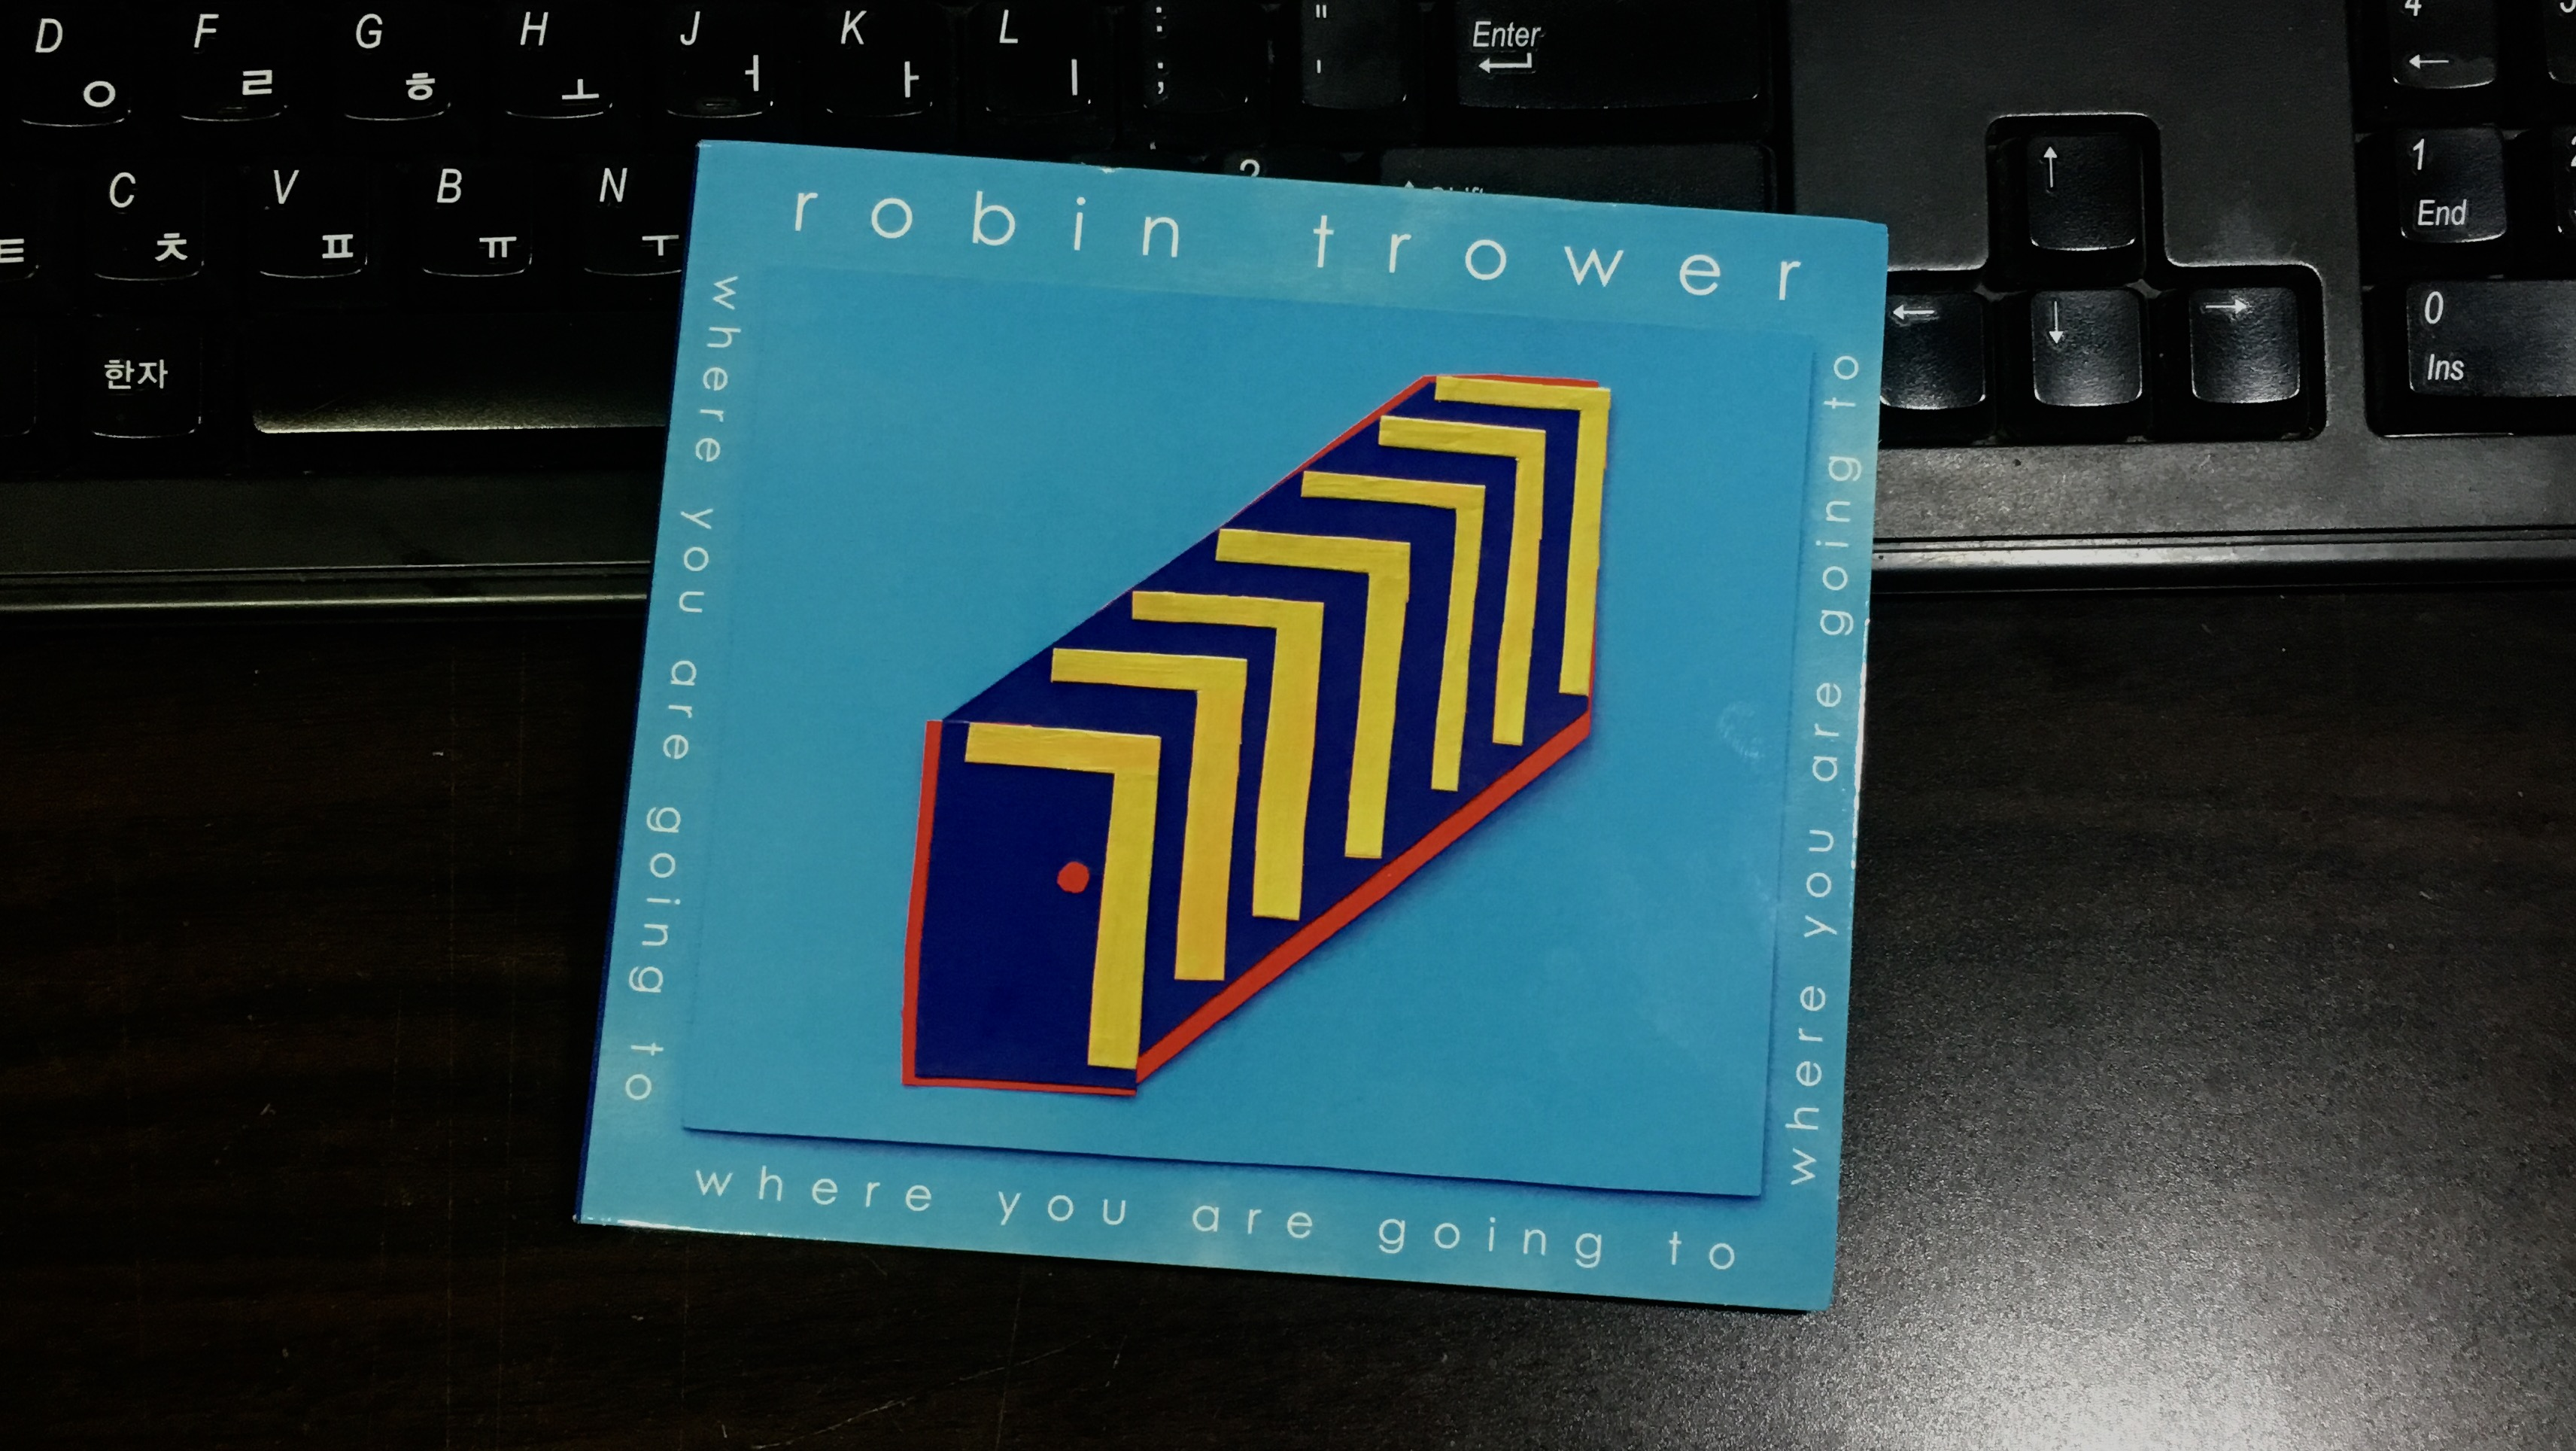 Where You Are Going To - Robin Trower / 2016